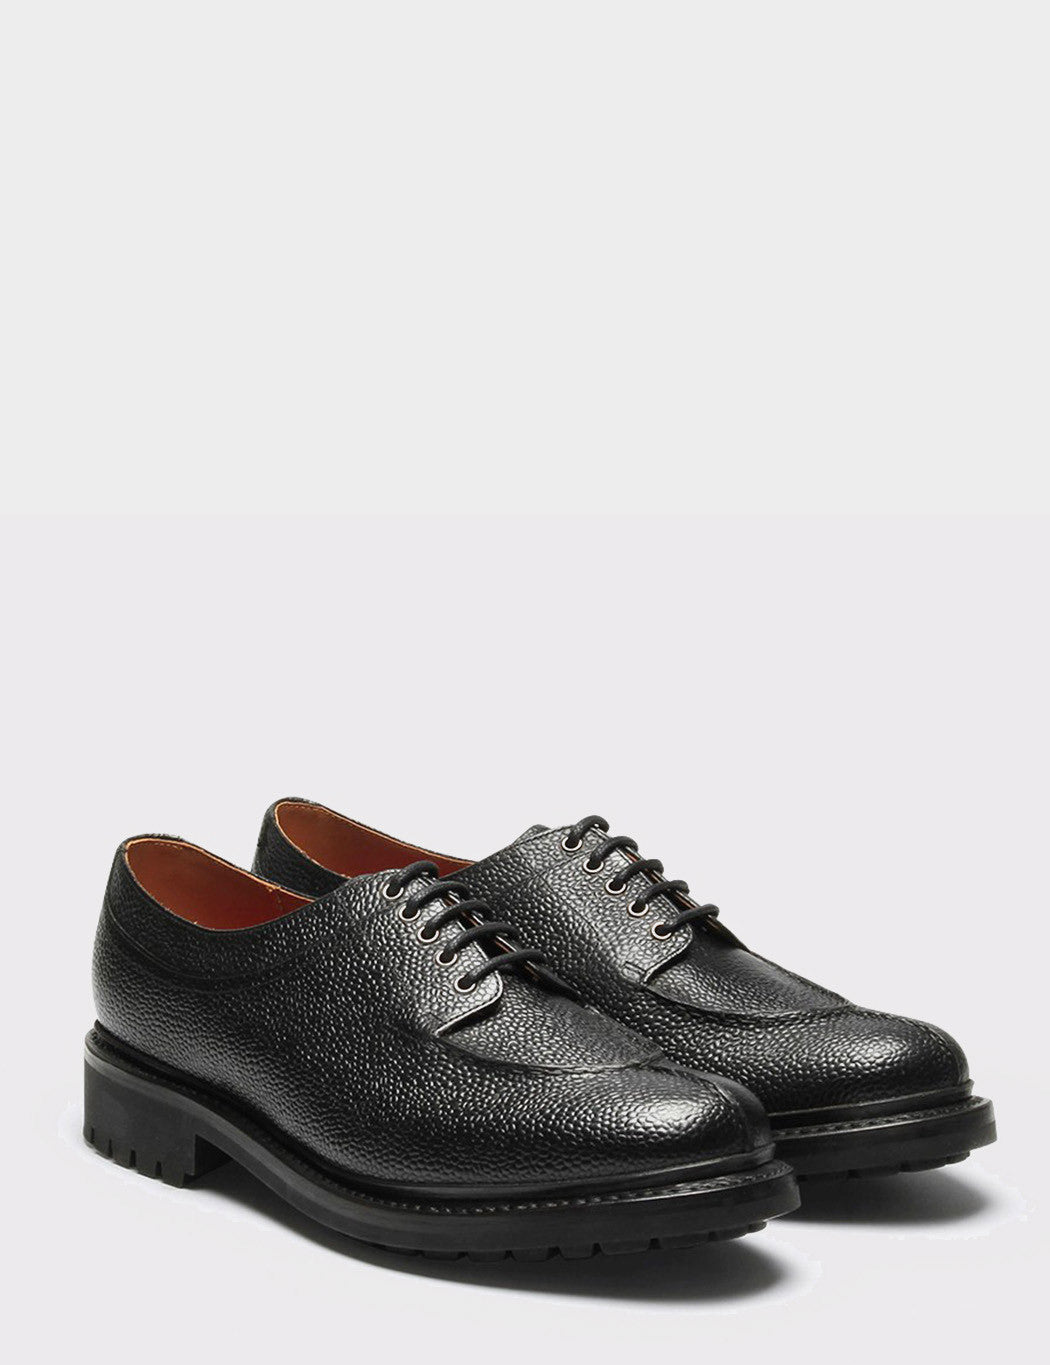 Grenson Percy Shoe - Black Grain